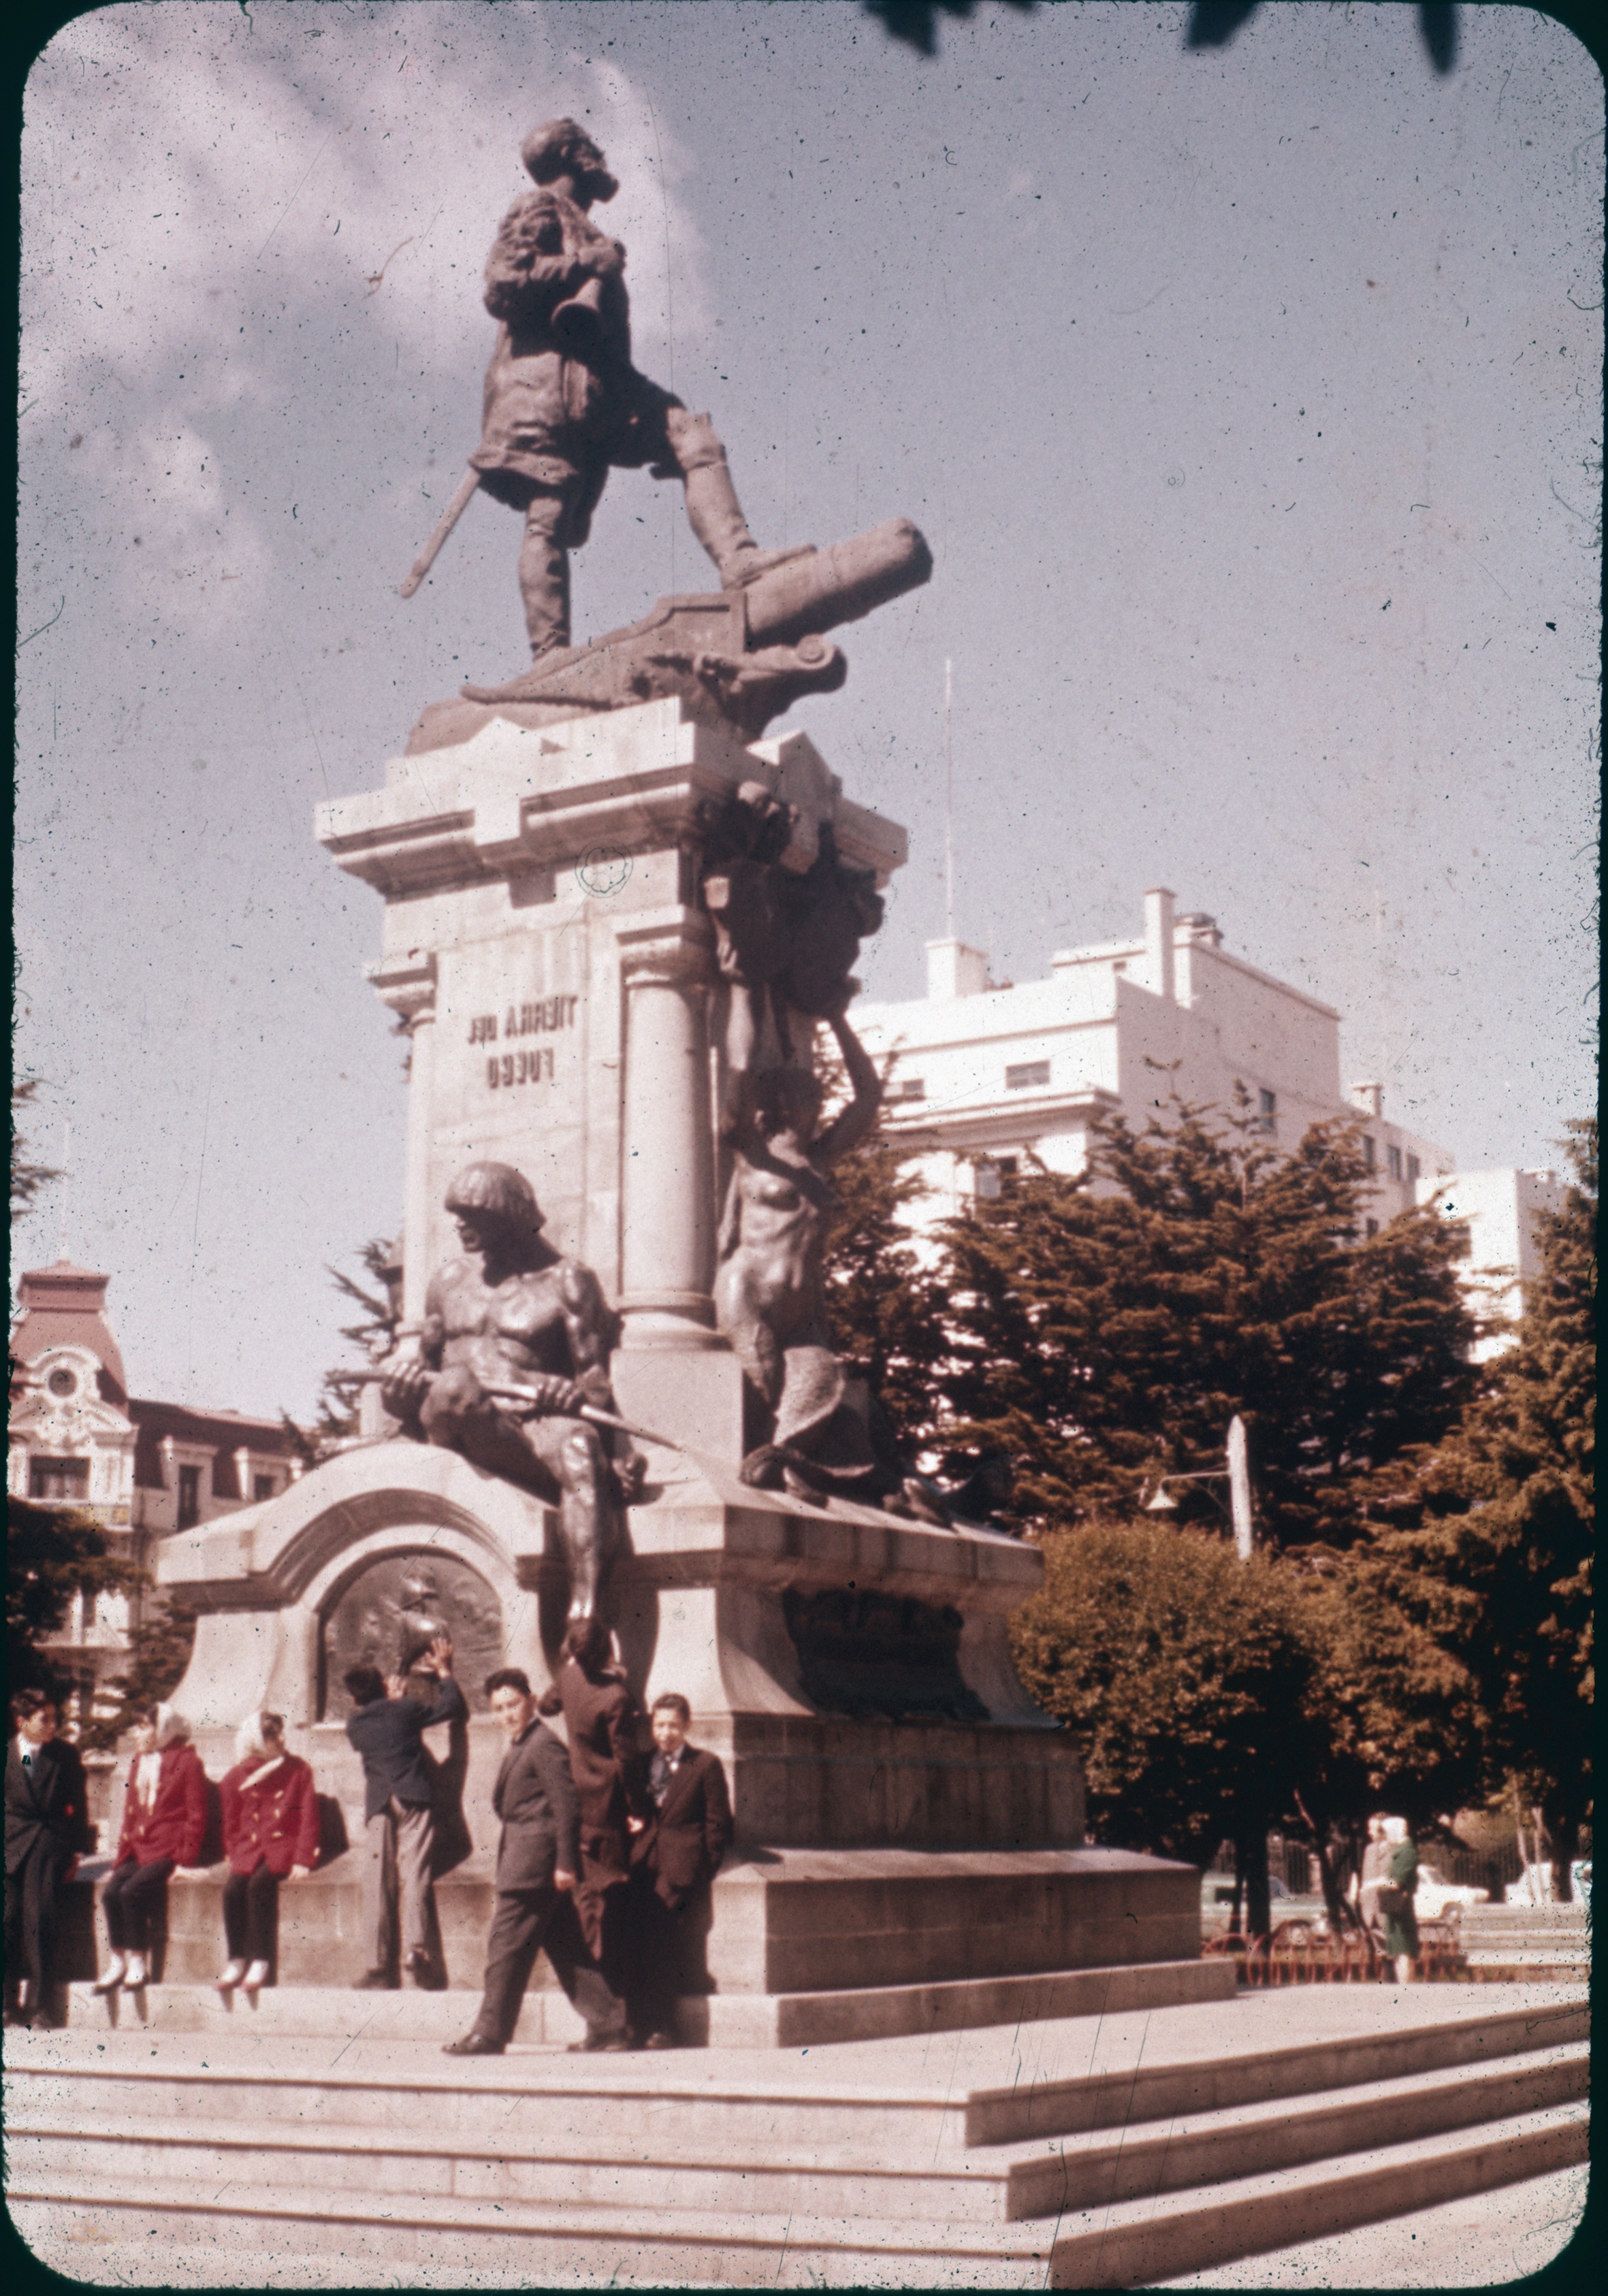 Enterreno - Fotos históricas de chile - fotos antiguas de Chile - Monumento a Magallanes, Plaza Punta Arenas